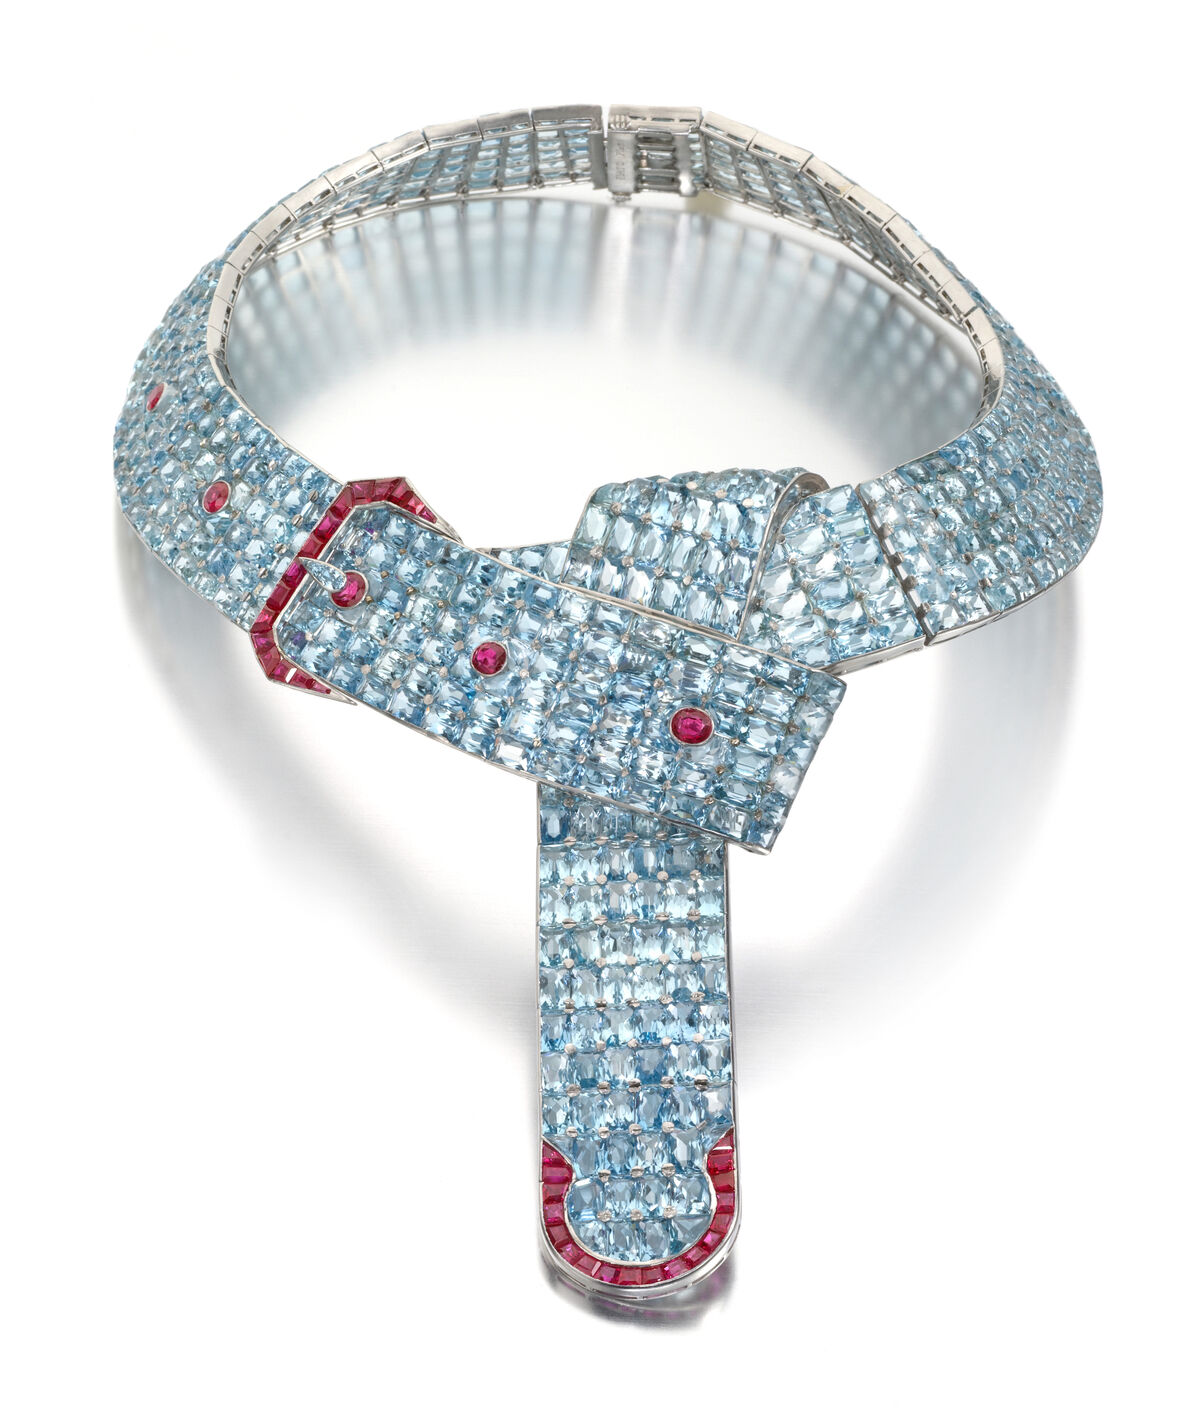 The Cole Porter Necklace: An Aquamarine and Ruby Belt with a Buckle Necklace Designed by Fulco, Duke of Verdura, for Paul Flato, New York, circa 1935. Image courtesy of Siegelson.